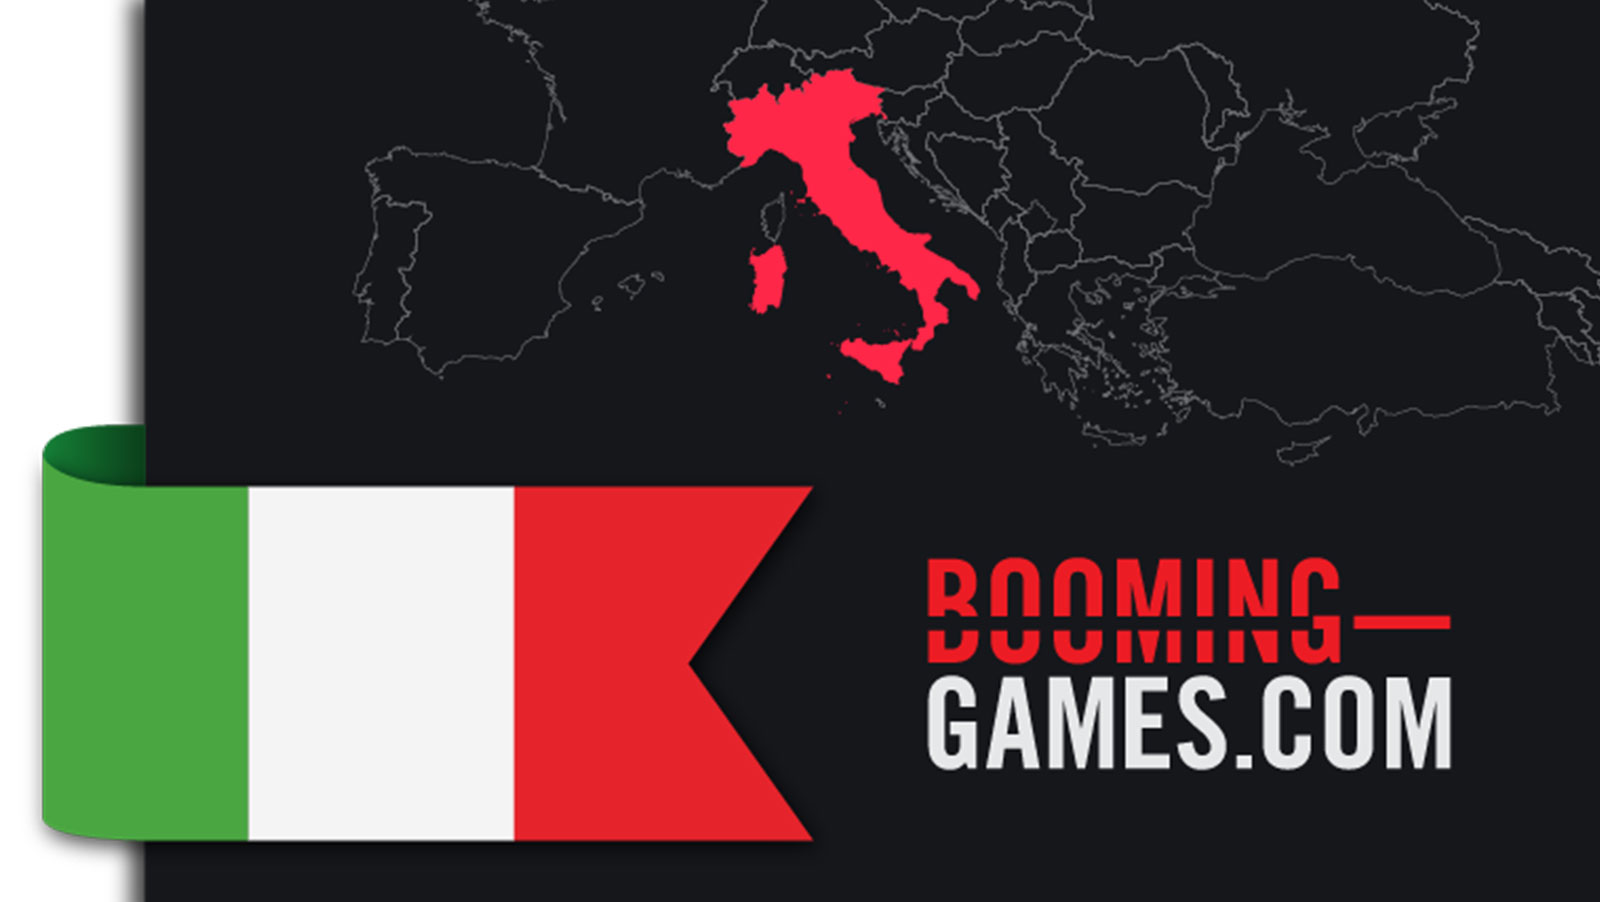 Booming Games goes Italy!